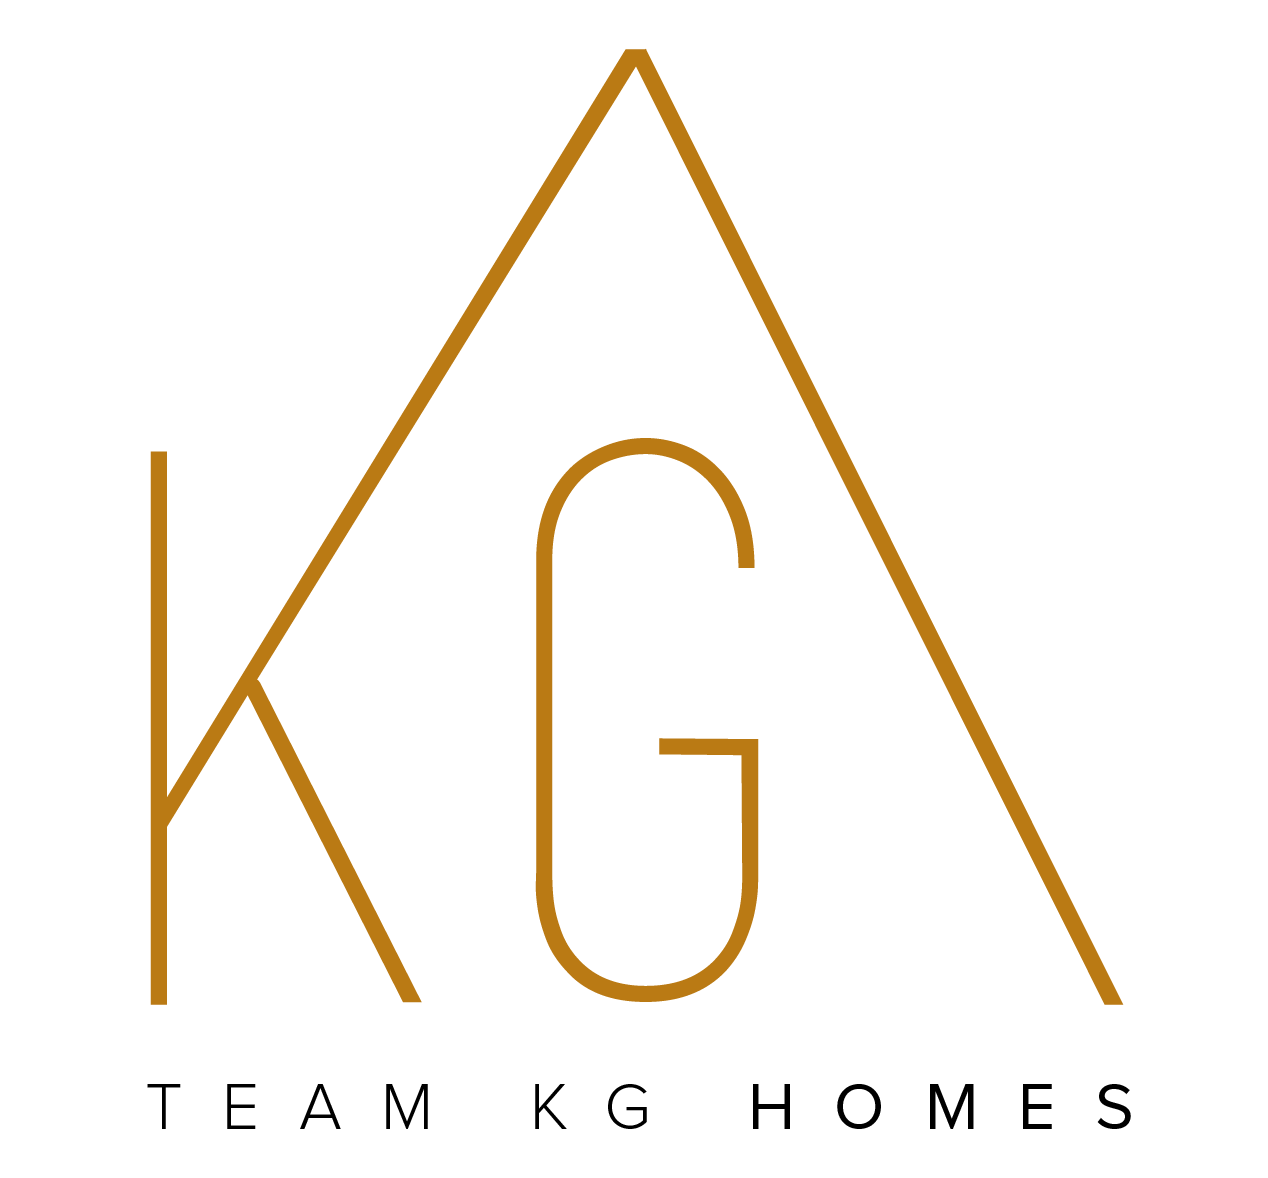 KG Realty